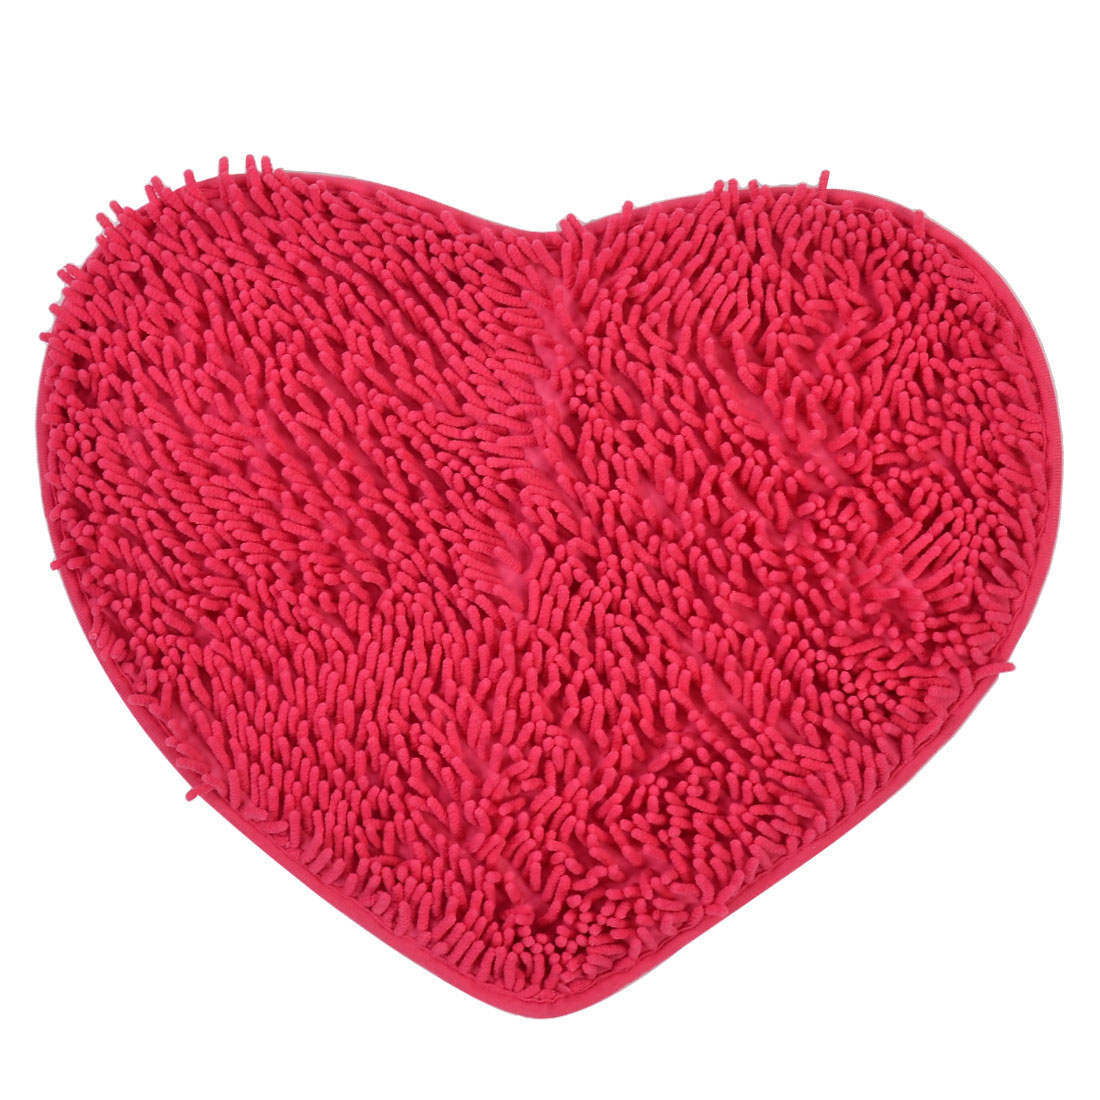 Bathroom Polyester Heart Shaped Absorbent Slip-resistant Pad Bath Shower Rug Fuchsia